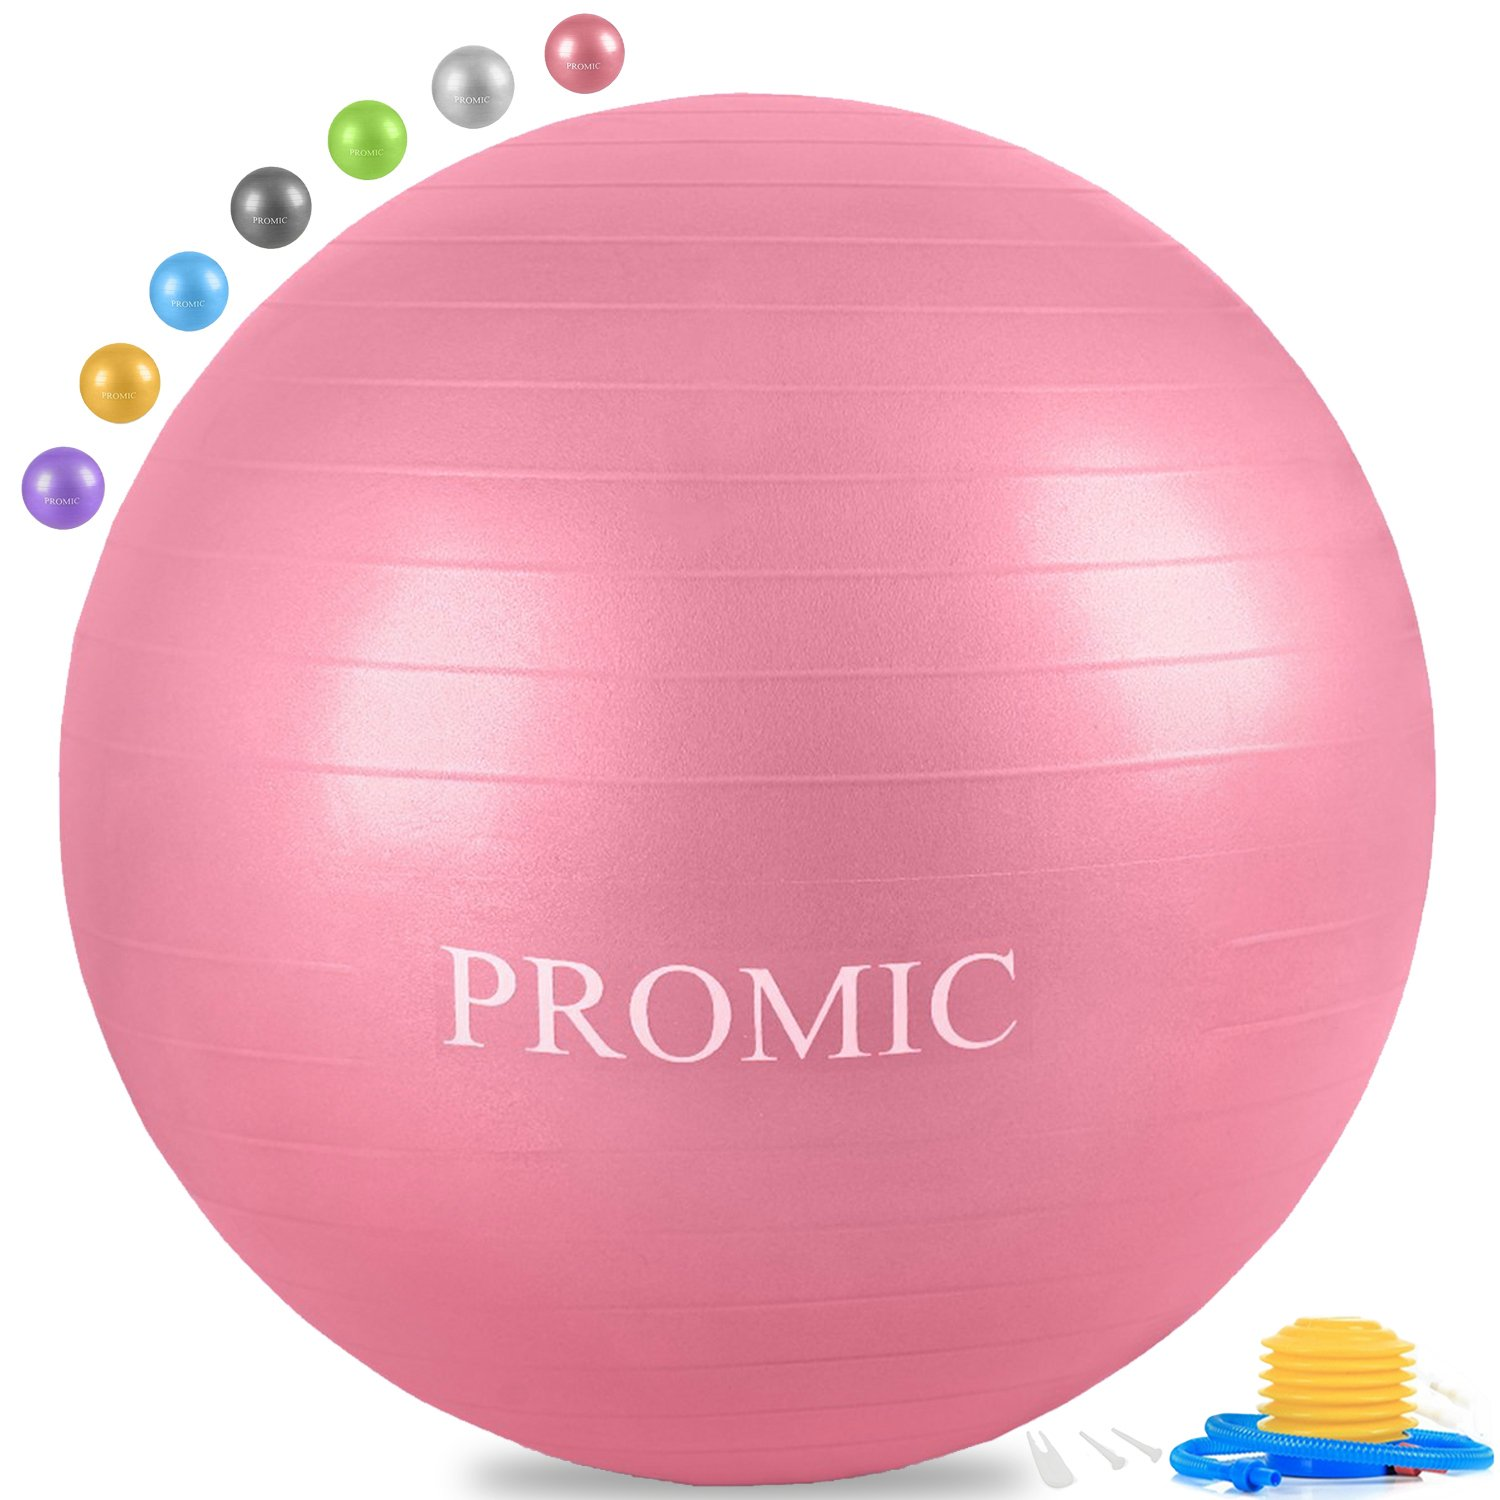 PROMIC Professional Grade Static Strength Exercise Stability Balance Ball with Foot Pump,65cm,Pink